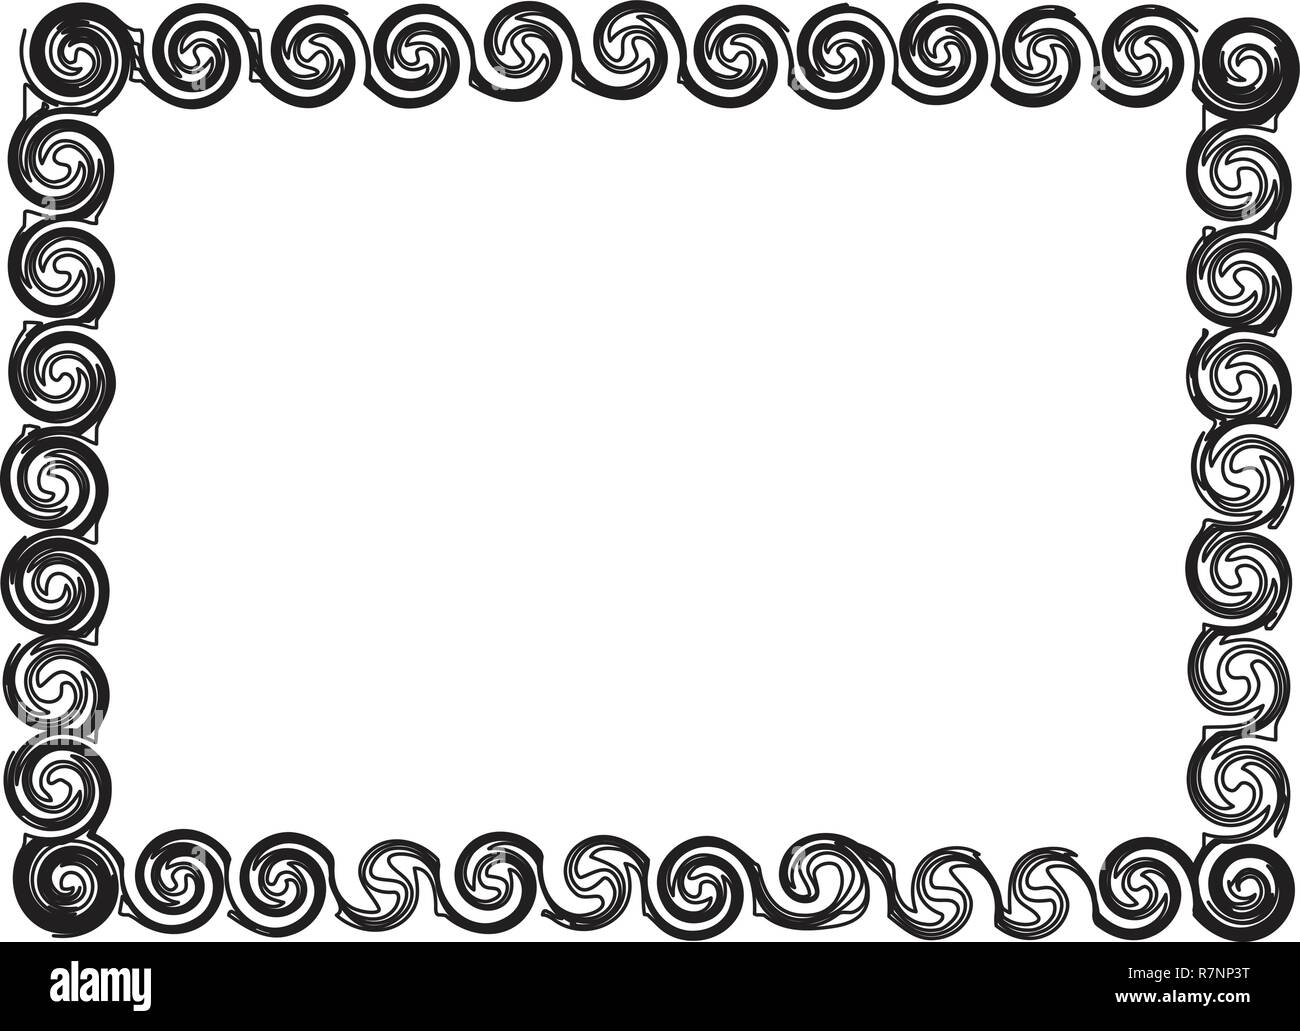 Grunge frame with scribble circles - Stock Image